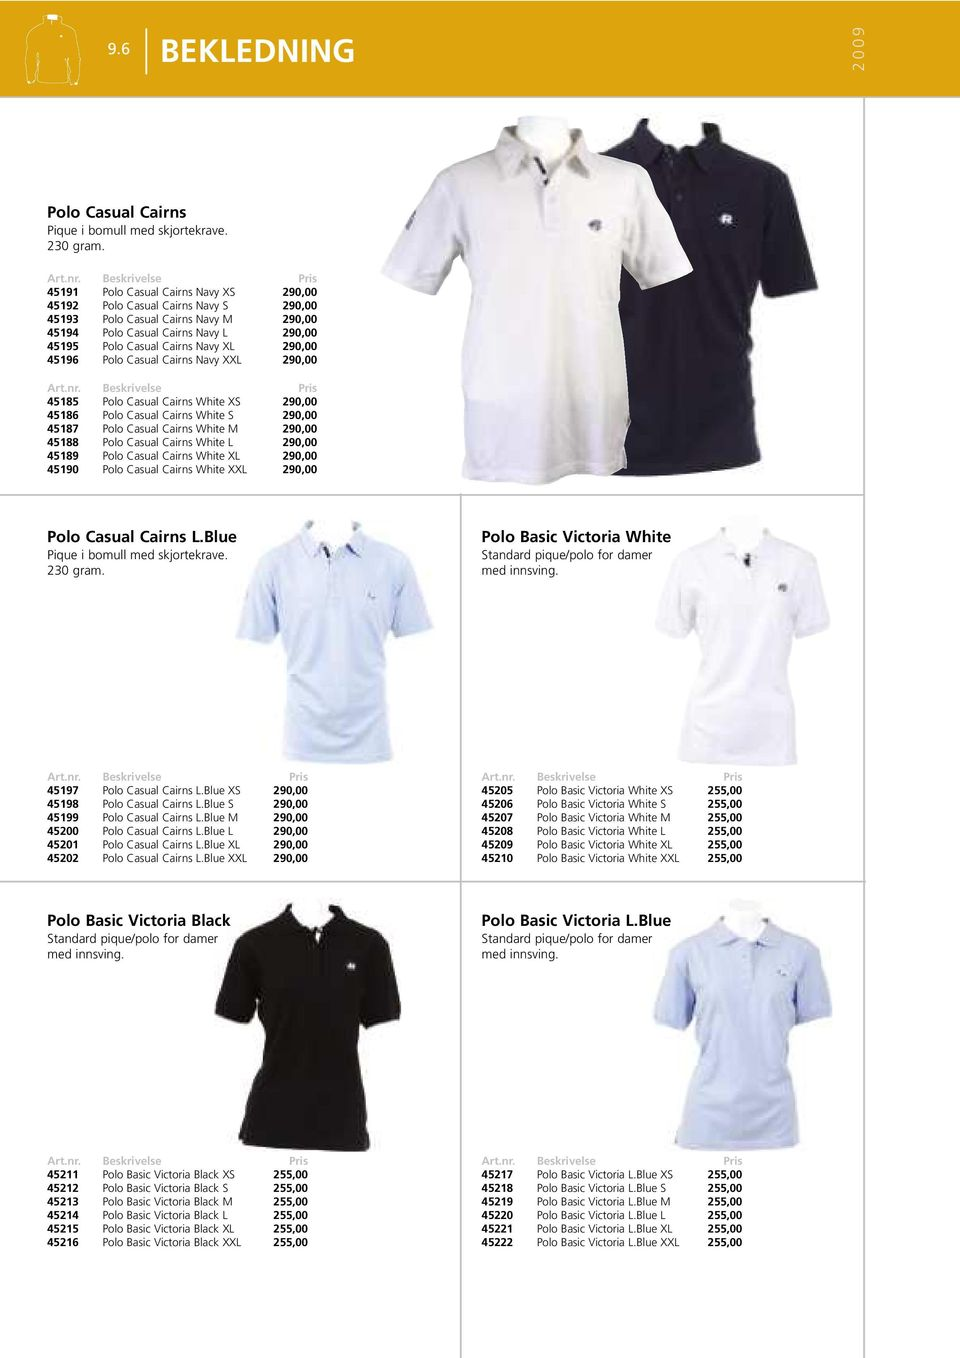 45196 Polo Casual Cairns Navy XXL 290,00 45185 Polo Casual Cairns White XS 290,00 45186 Polo Casual Cairns White S 290,00 45187 Polo Casual Cairns White M 290,00 45188 Polo Casual Cairns White L